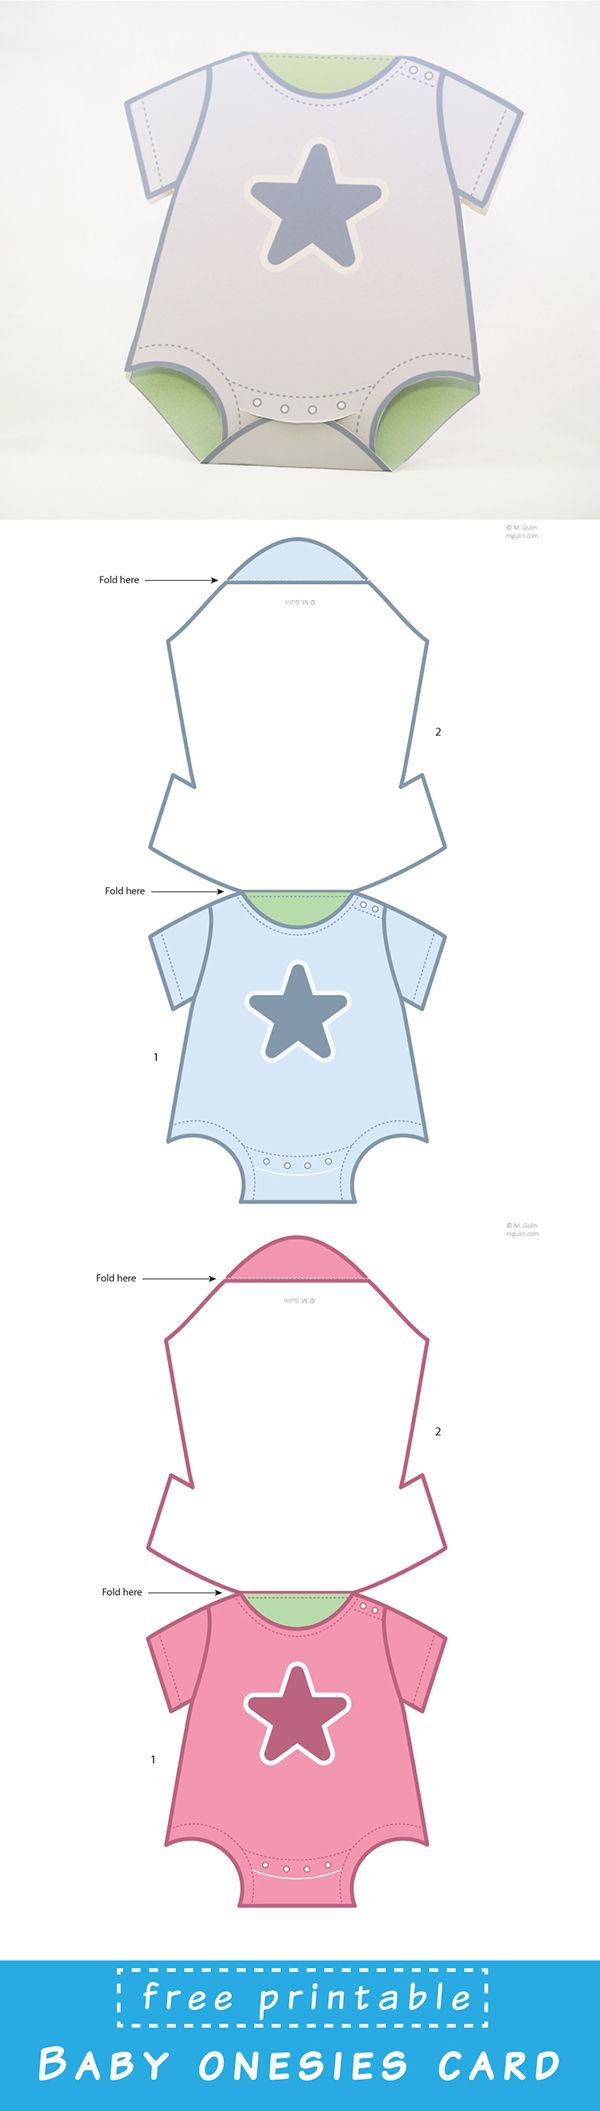 Free Printable Baby Onesies Card template. Just dowload and assemble.